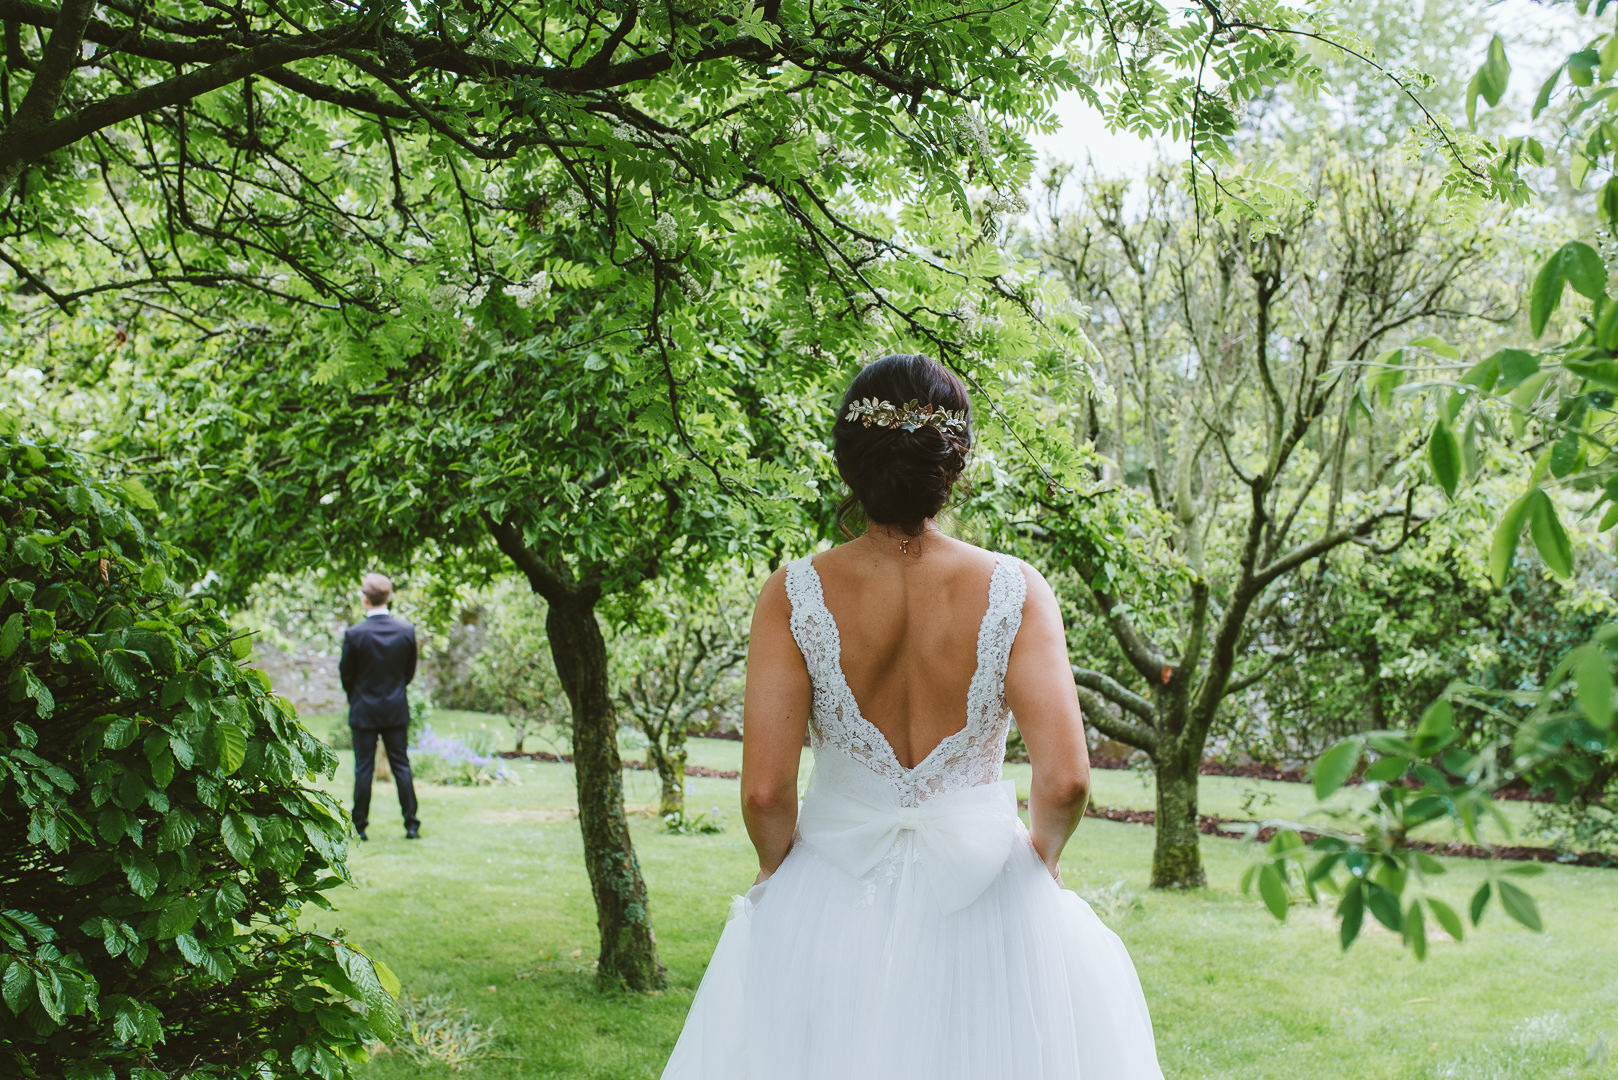 Why have a second shooter at a wedding? Capture first look from two angles.